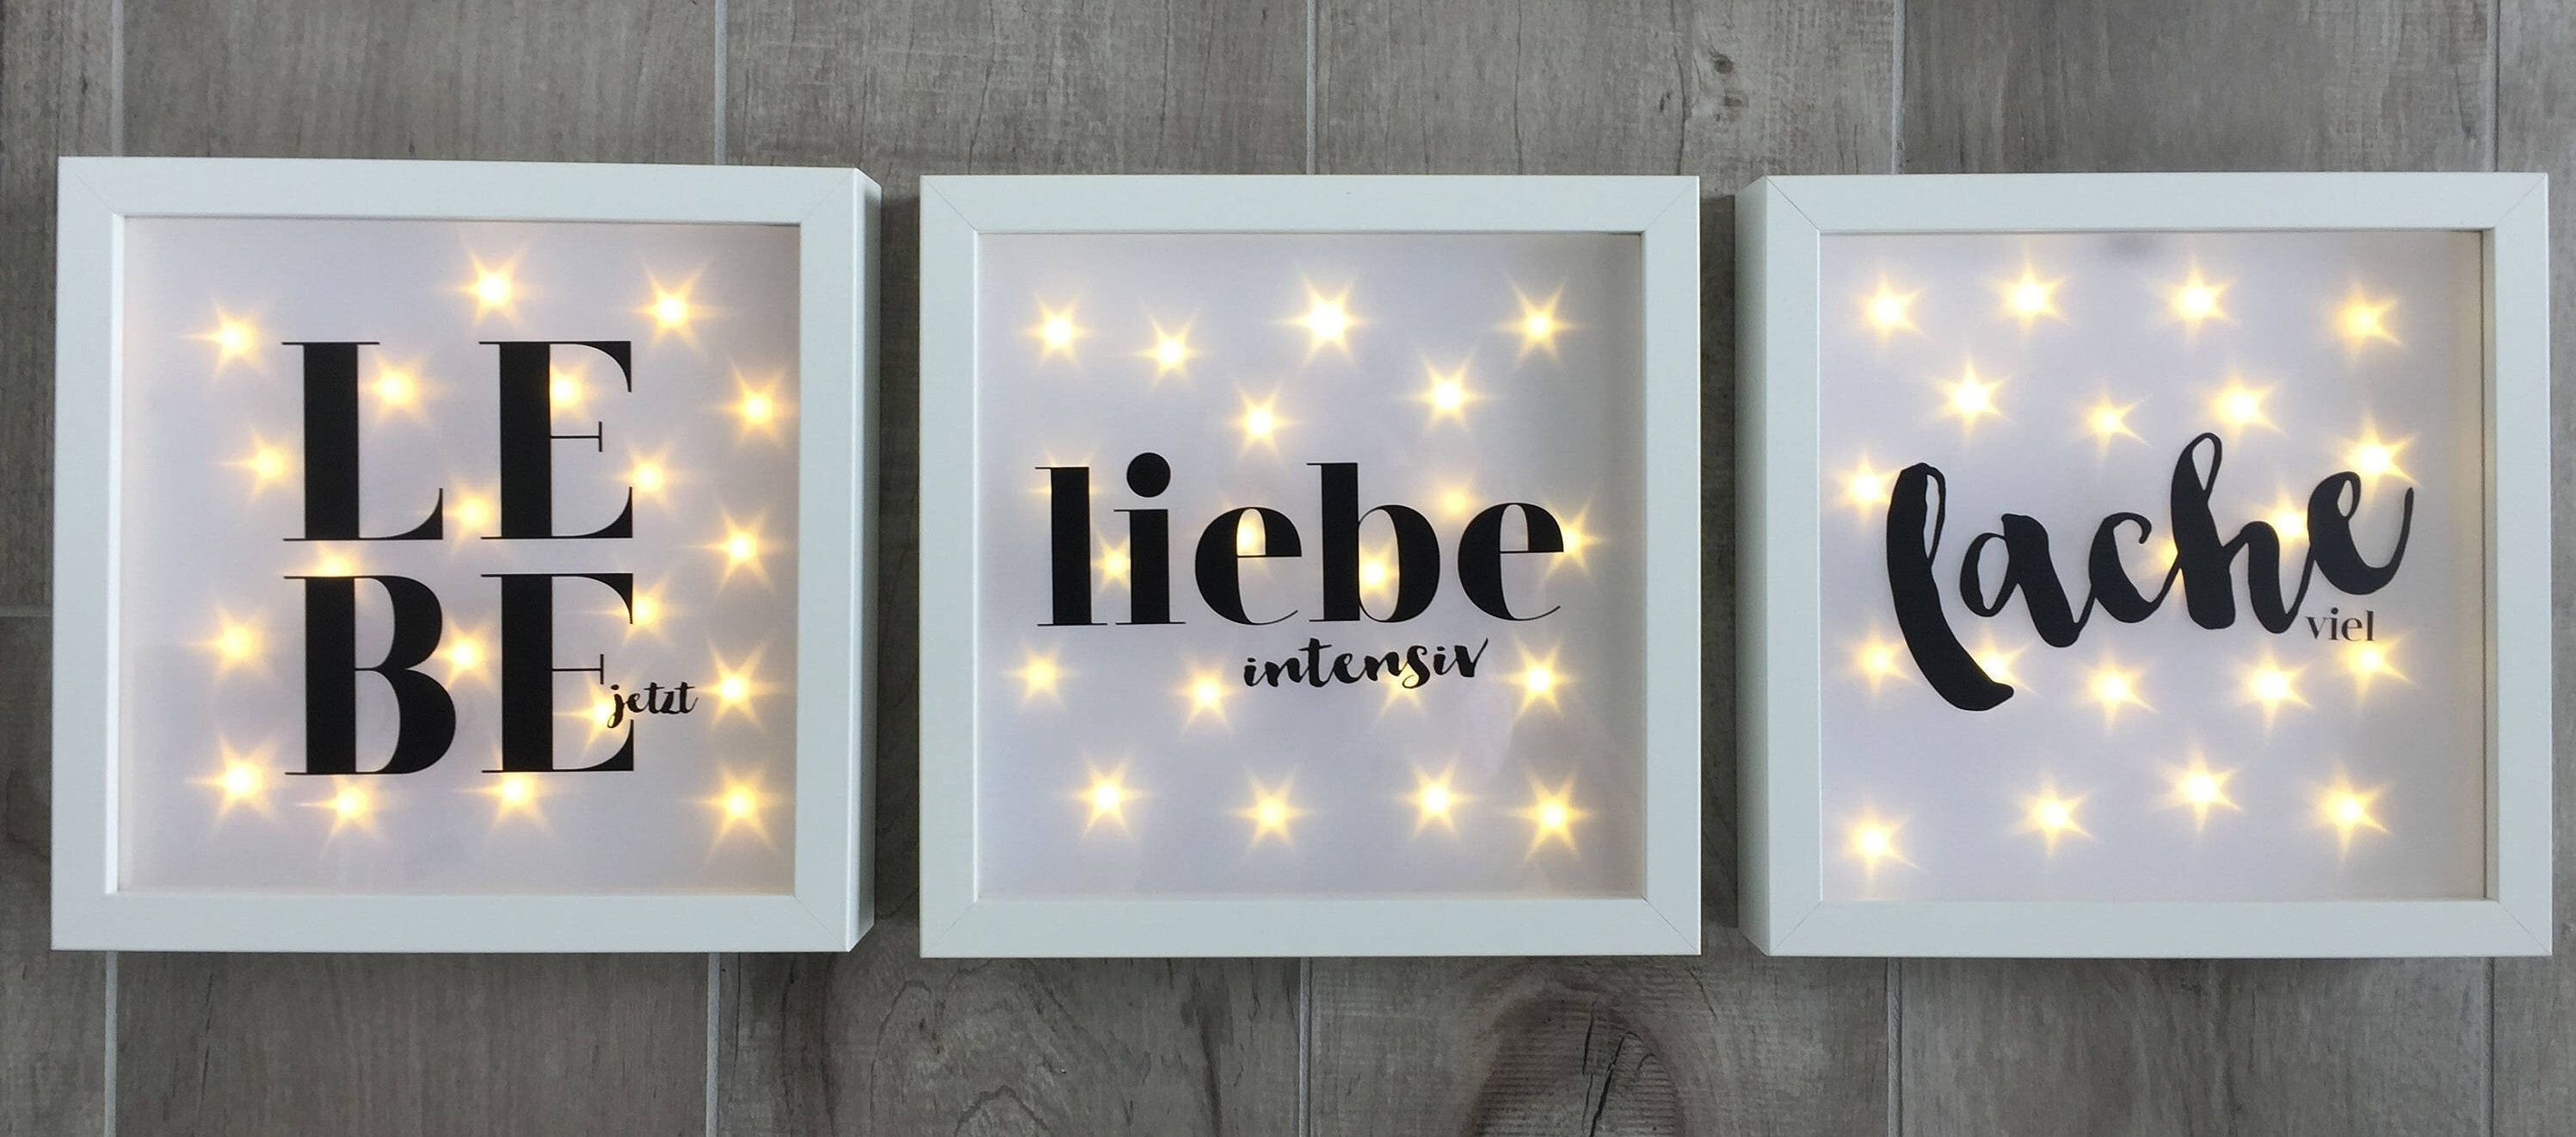 Illuminated picture frame with spell, wall, led frame, decoration ...